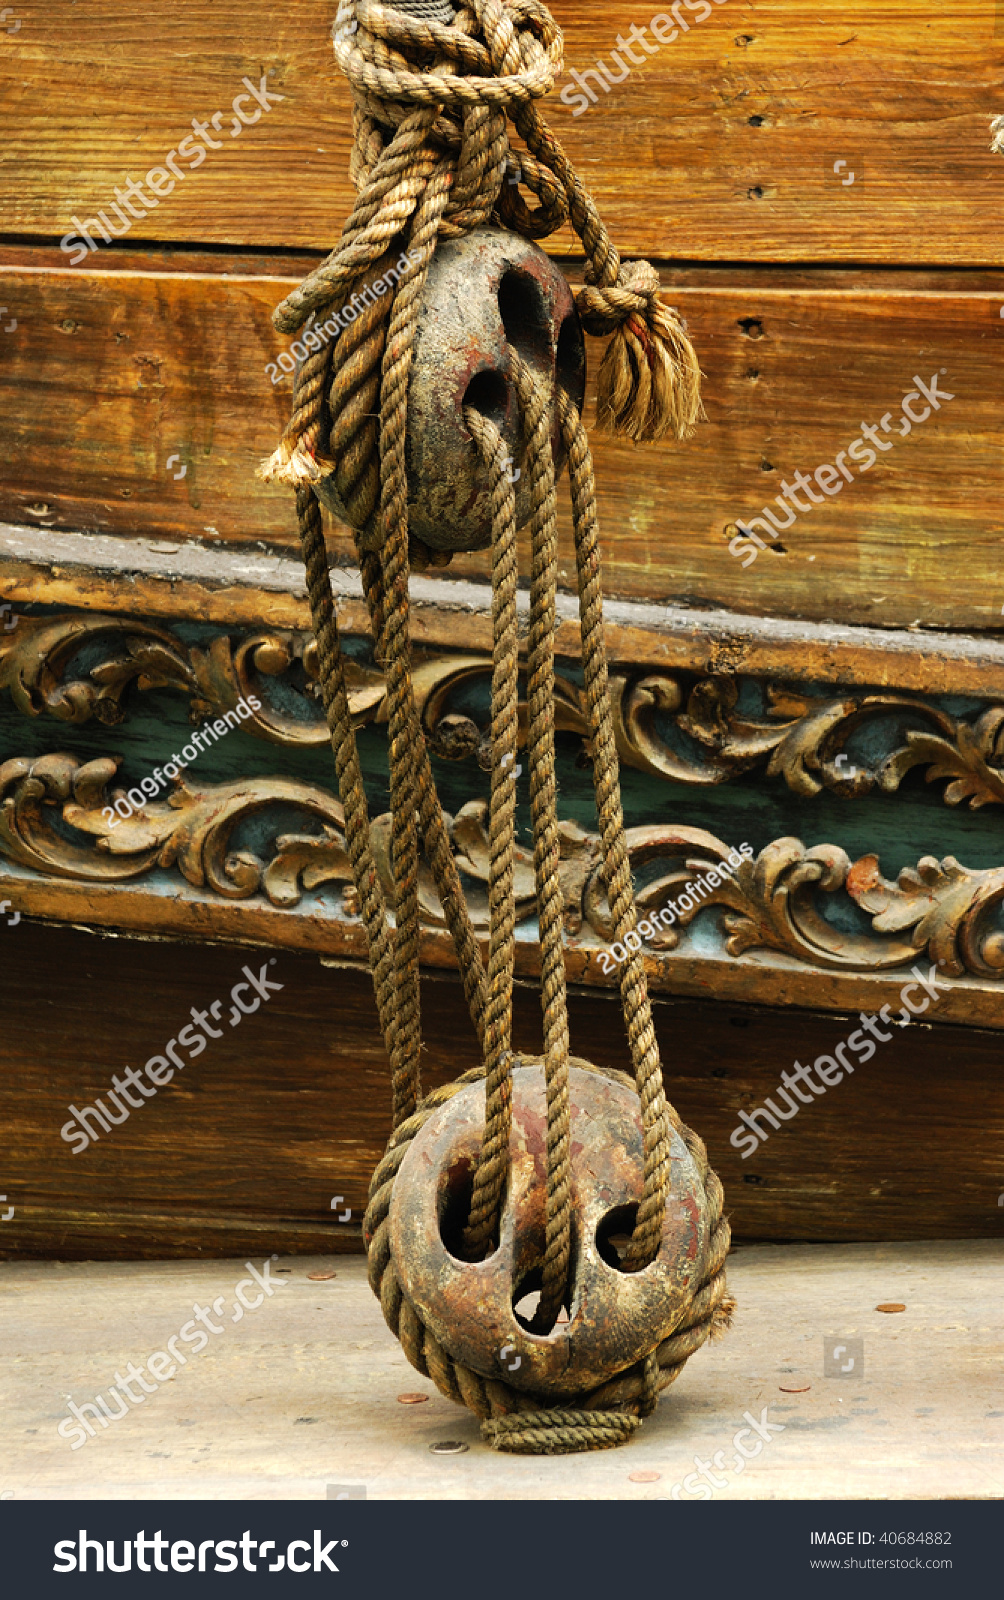 Vintage wooden pulley block in an ancient boat displaying at west edmonton  mall, edmonton, alberta, canada - Image